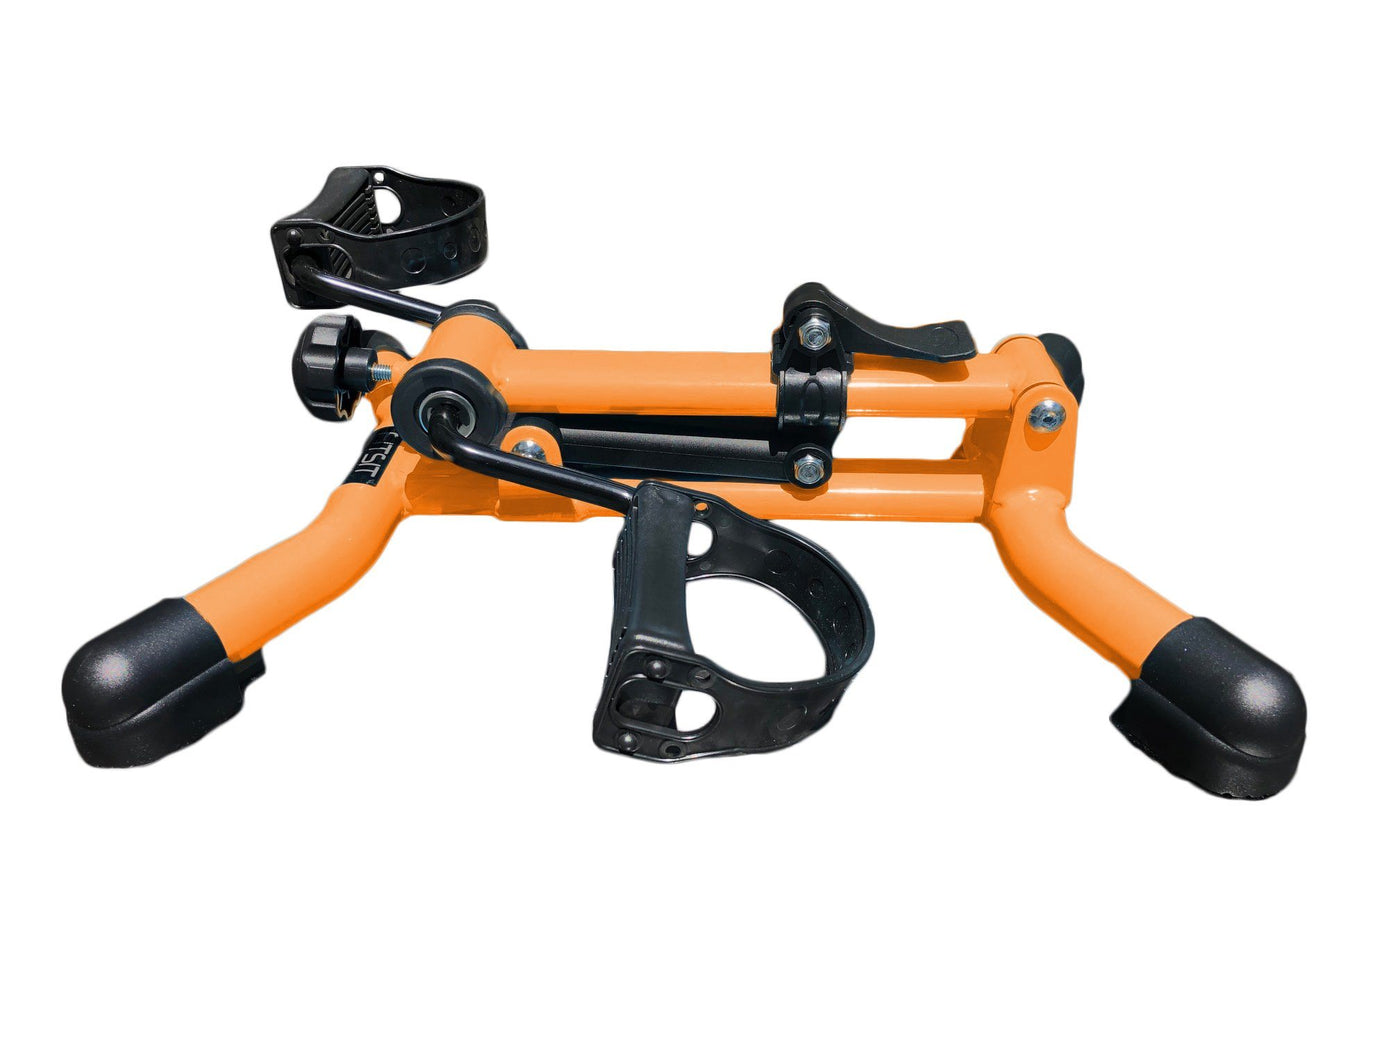 FITSIT DELUXE PEDAL EXERCISER - folding frame - orange